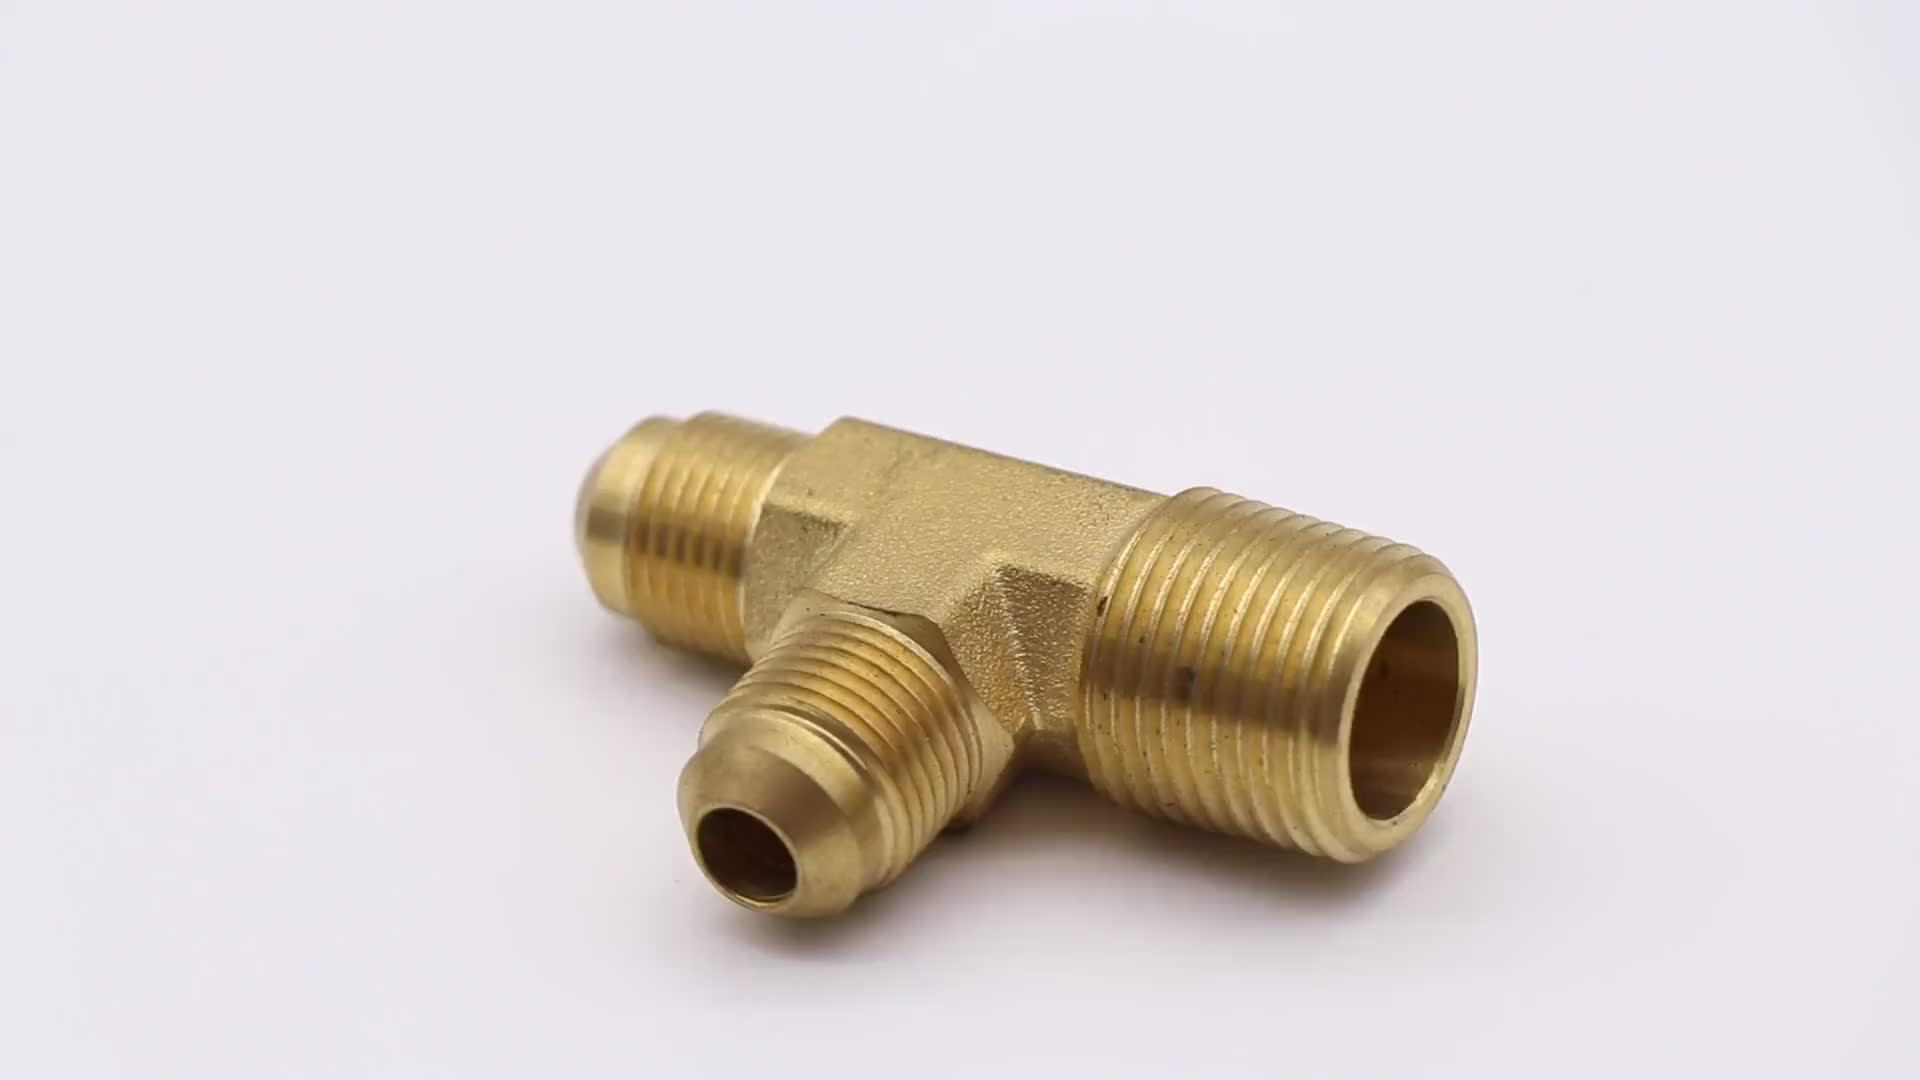 K521 male reducing pipe branch tee fitting, T shape pipe fitting, flare fitting for refrigeration